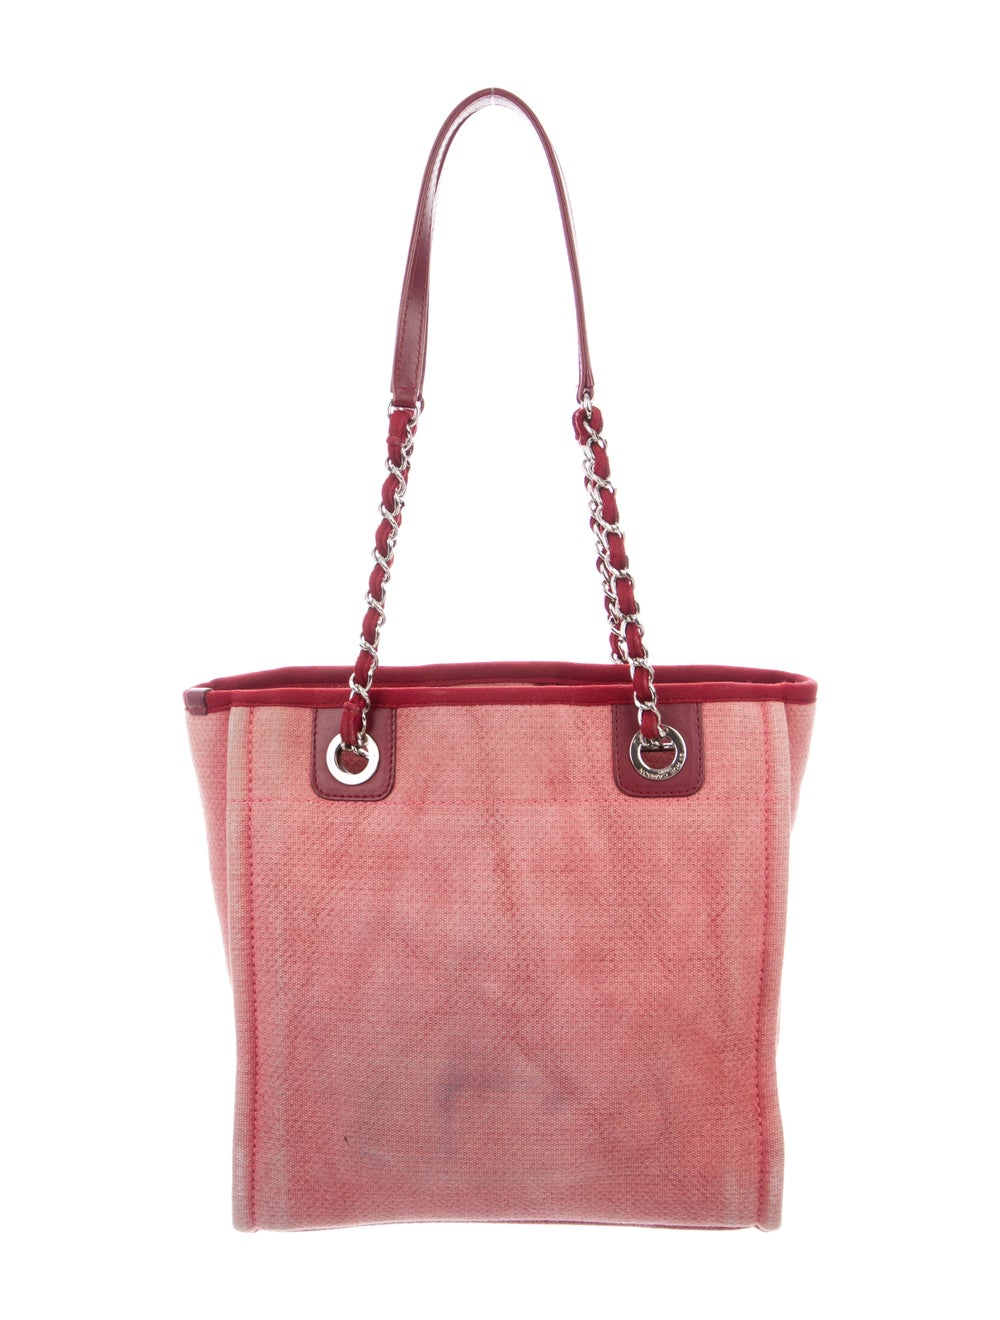 Chanel Small Deauville Bag Pink - image 4